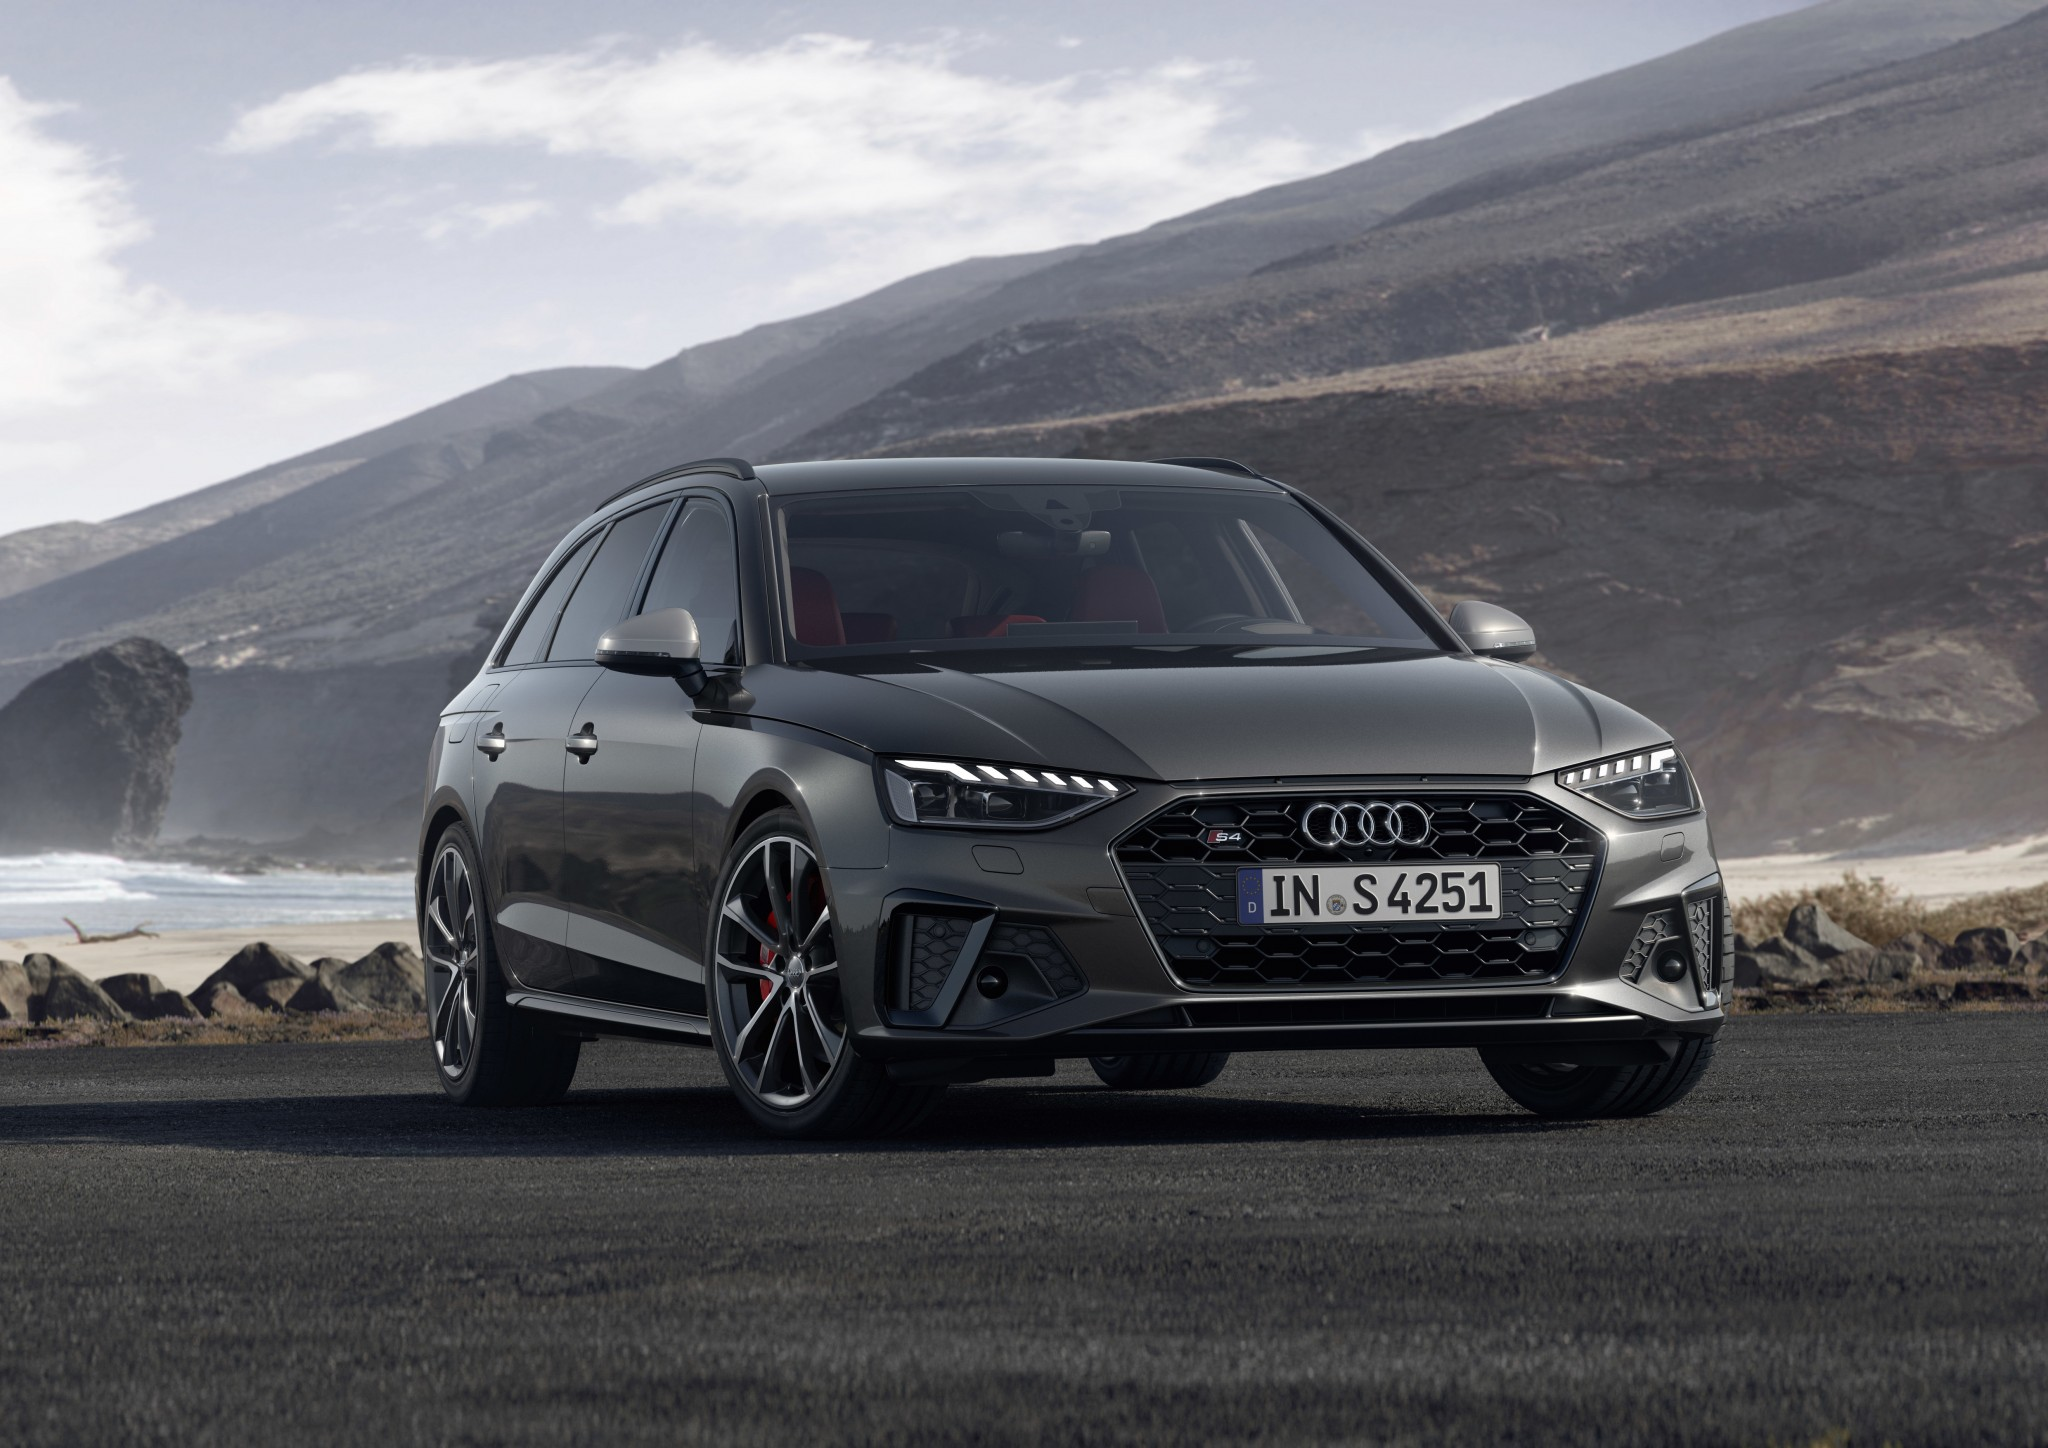 New 2020 Audi A4 revealed | Practical Motoring